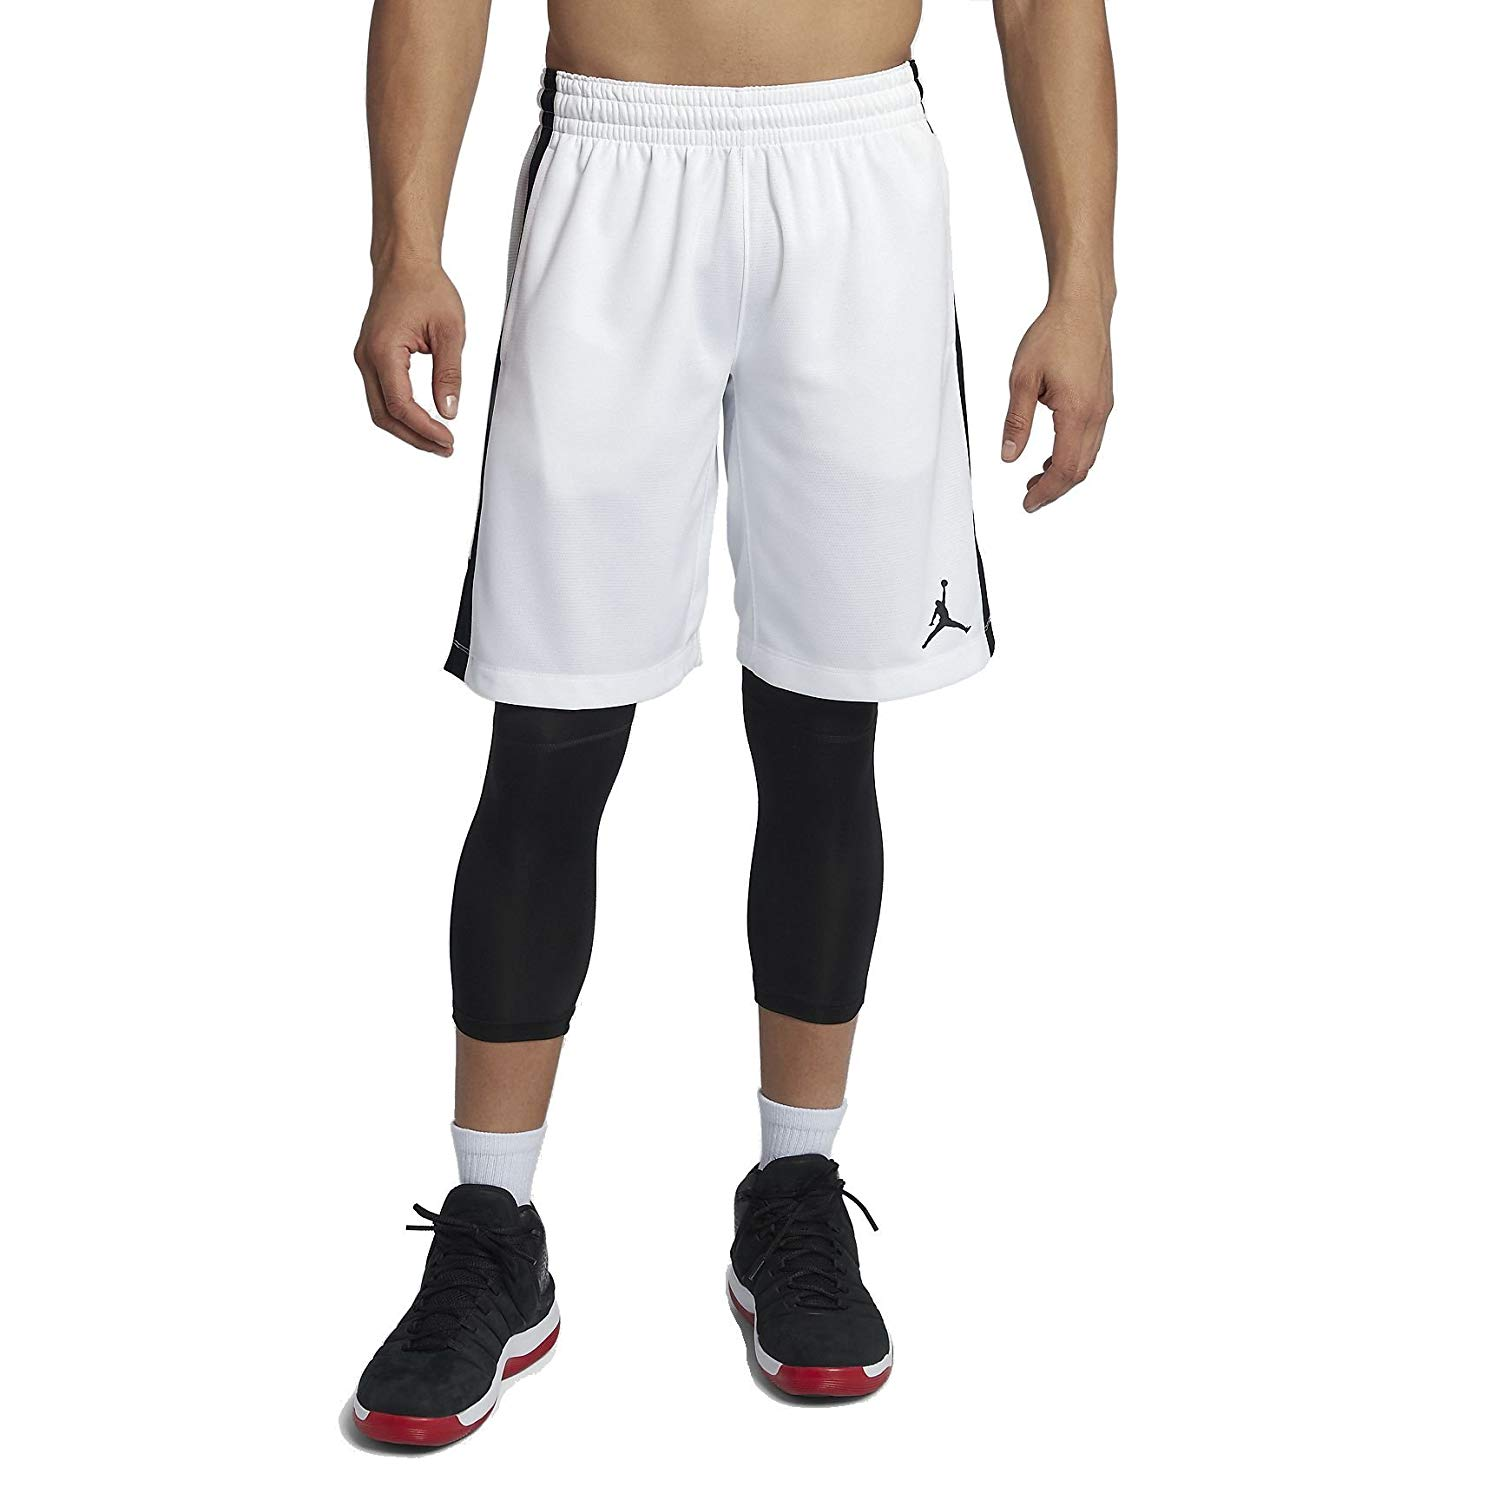 25015bc500d Get Quotations · Jordan Flight Men's Basketball Shorts (White/Black, Small)